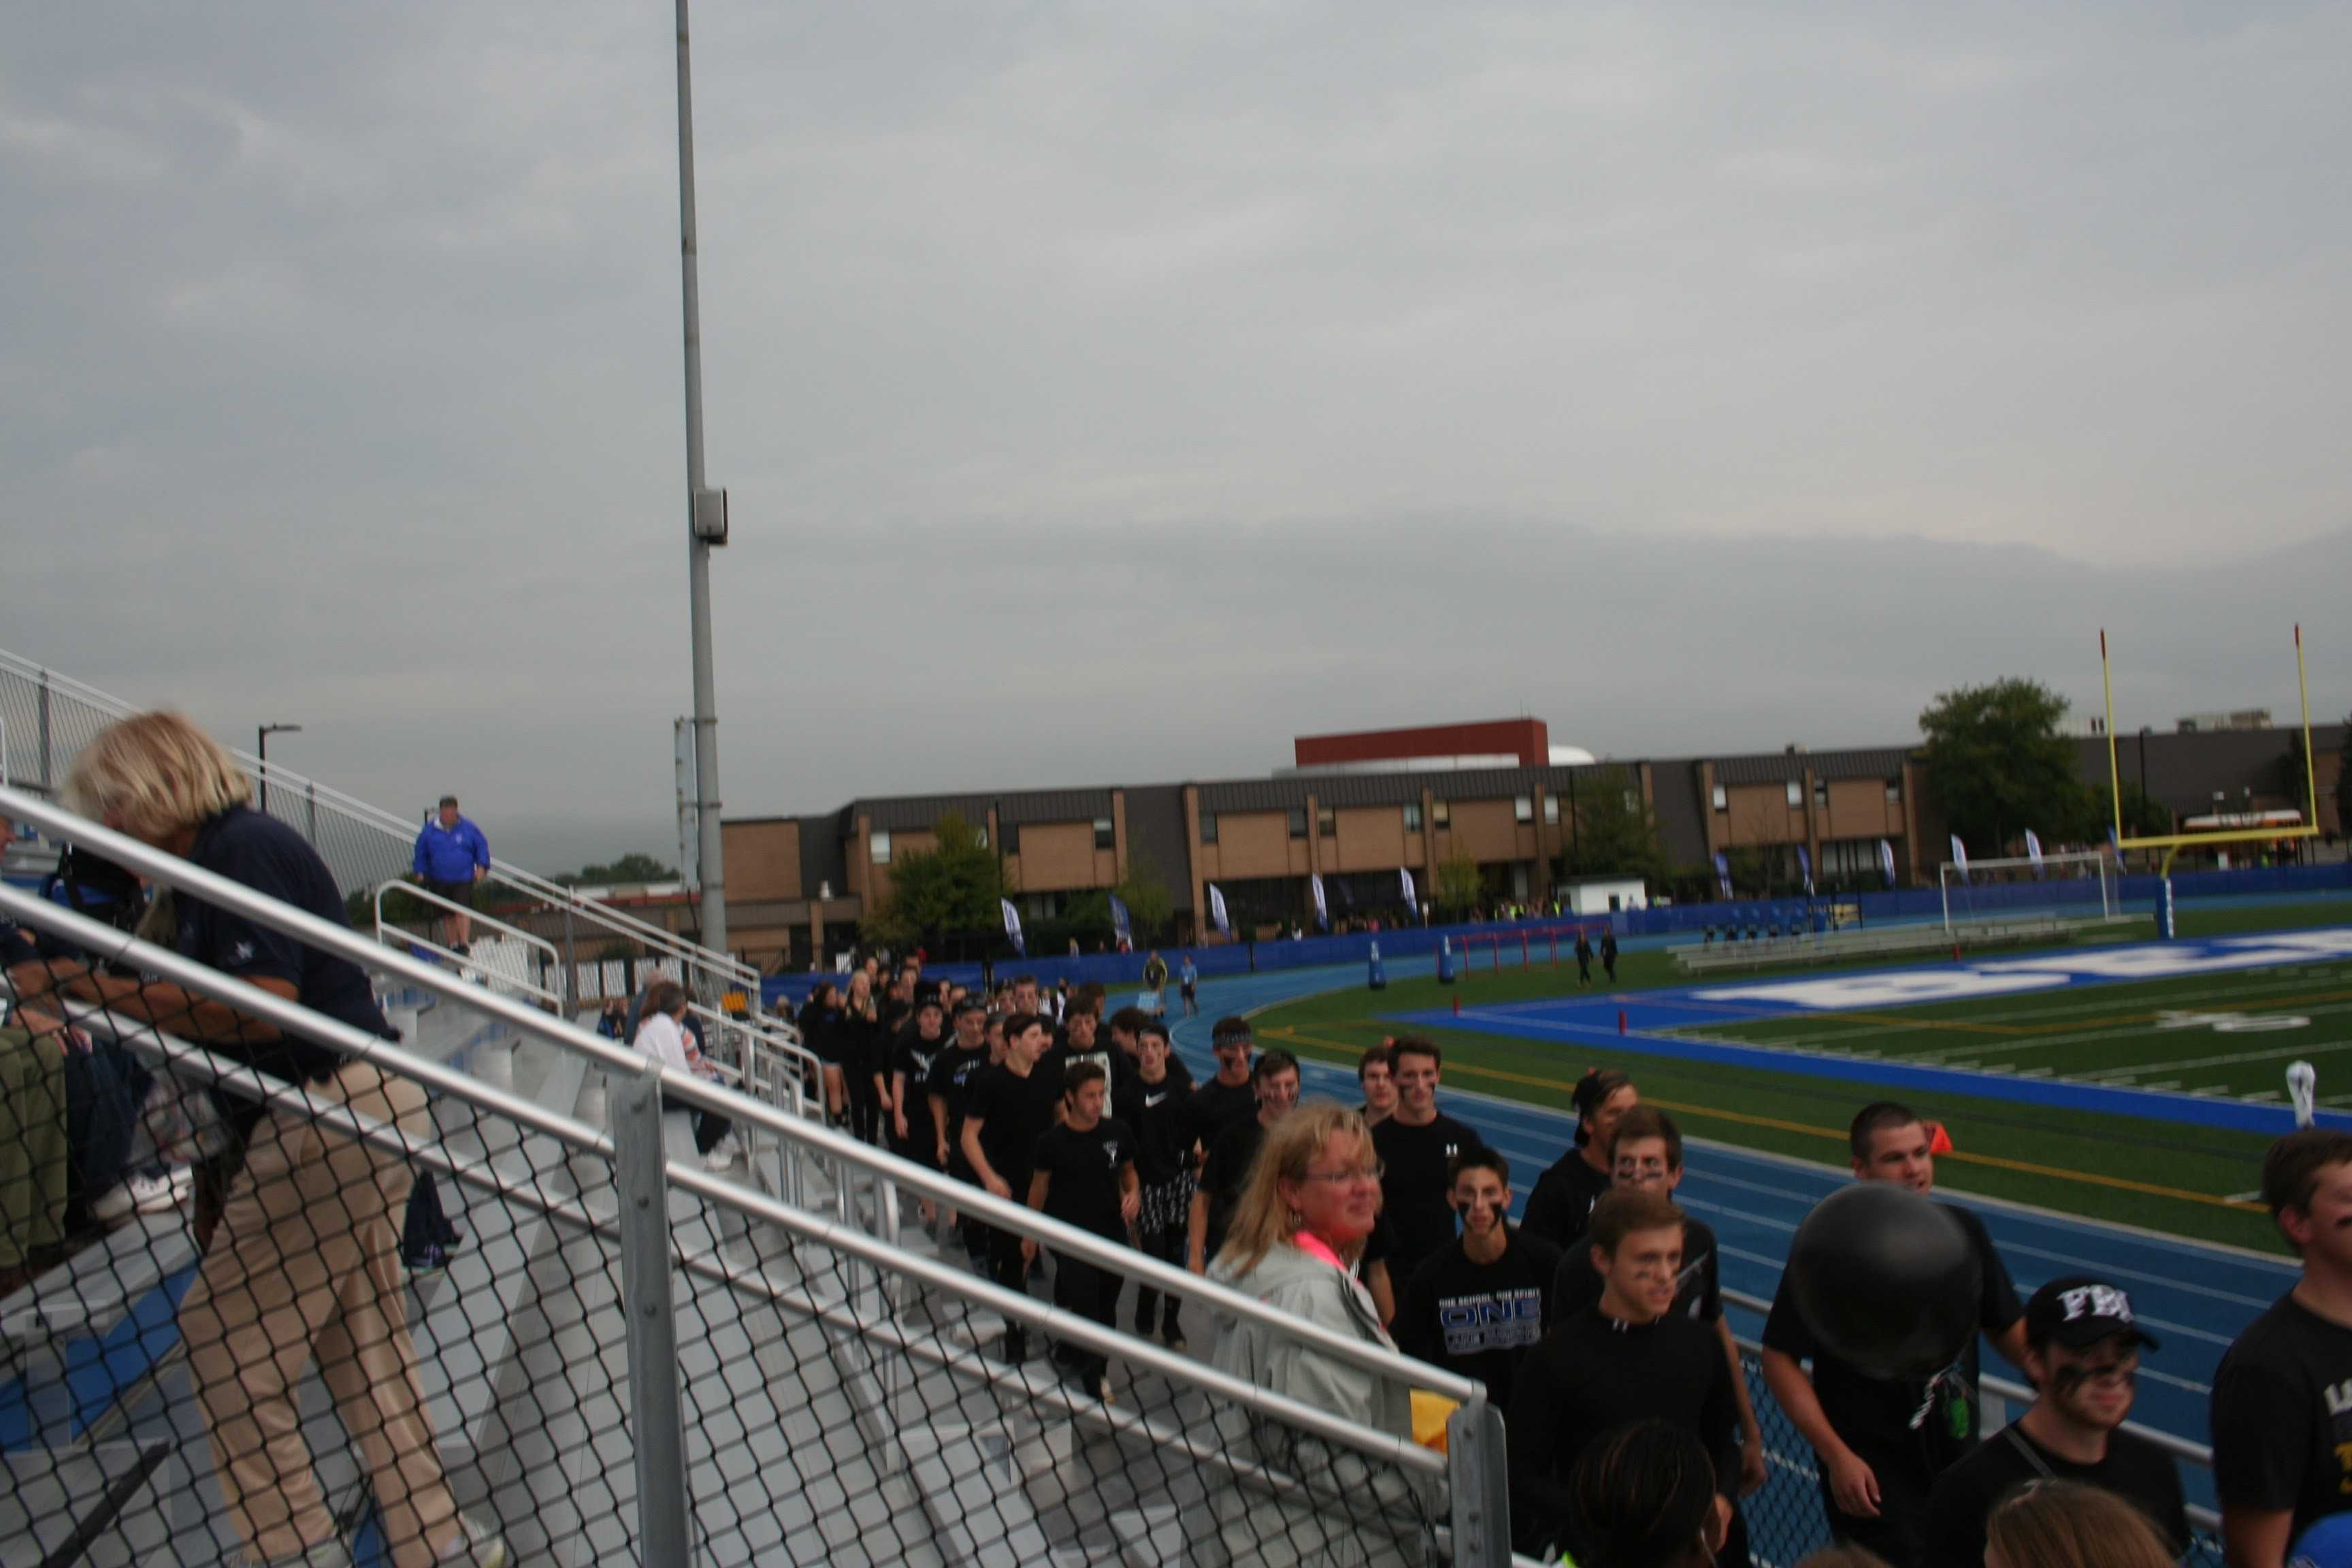 Students march from inside the school into the stands, lead by their section leader, Noah McGarr, senior.